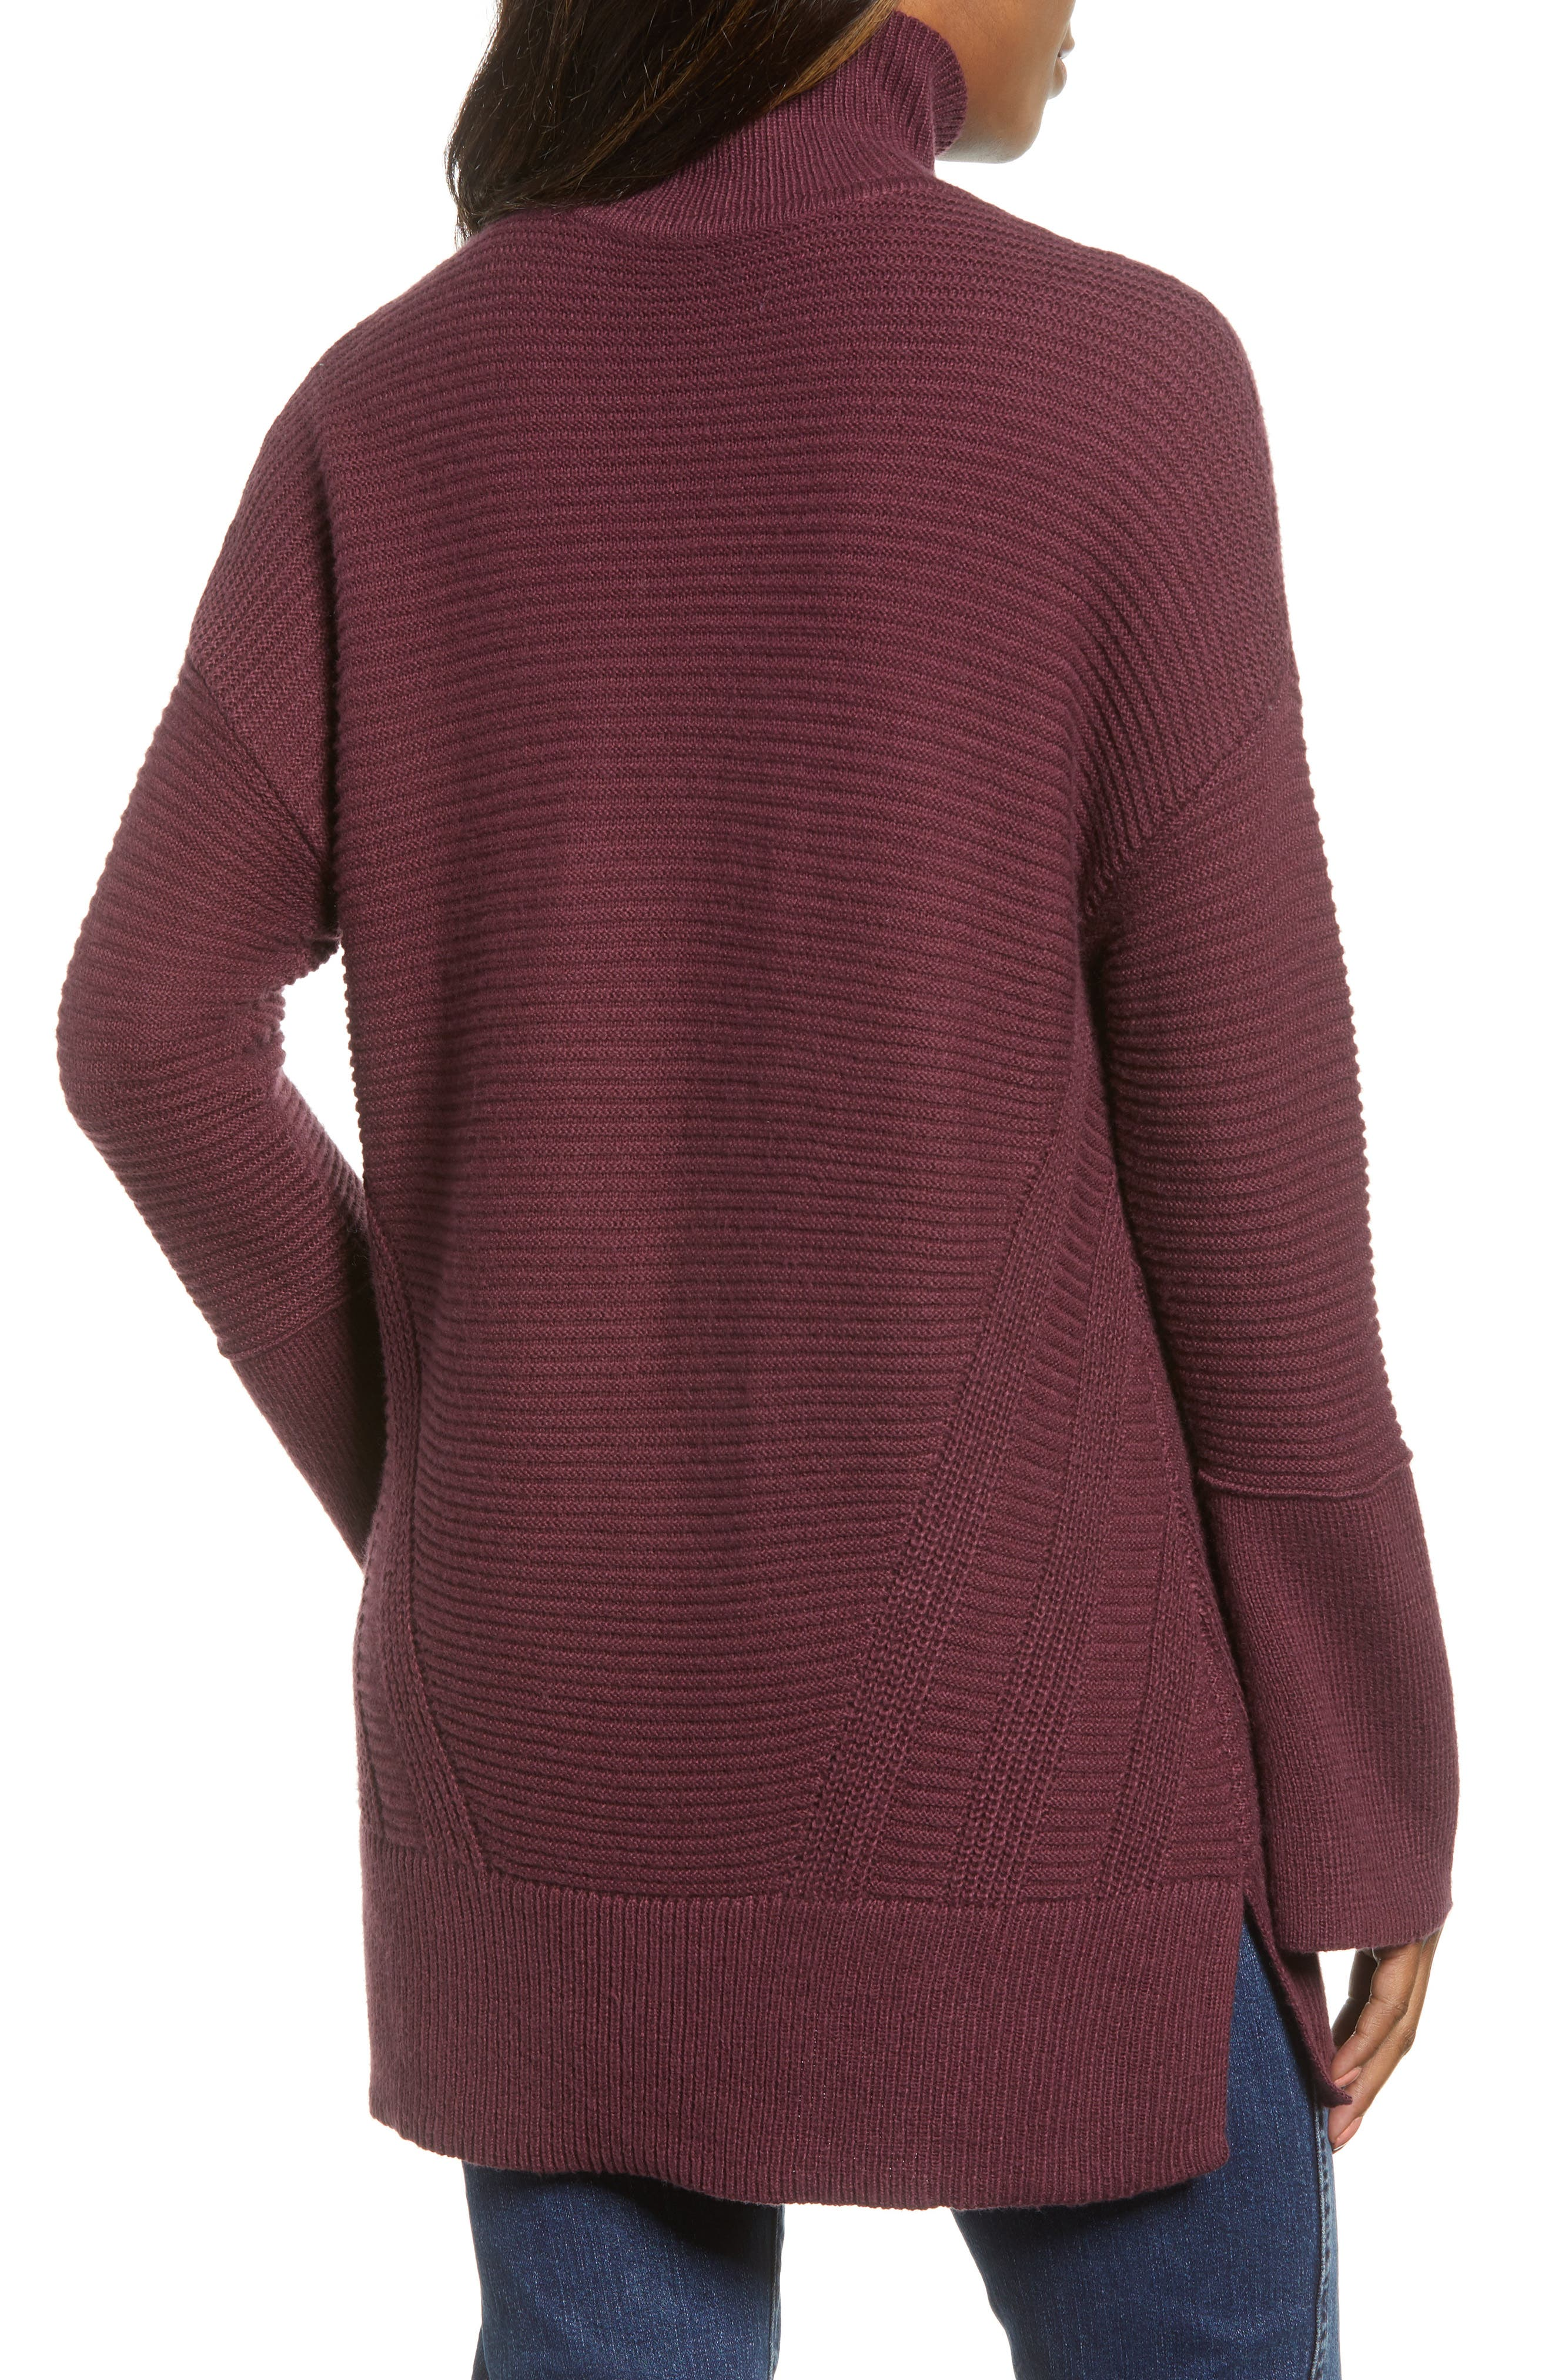 Ribbed Turtleneck Tunic Sweater,                             Alternate thumbnail 2, color,                             930